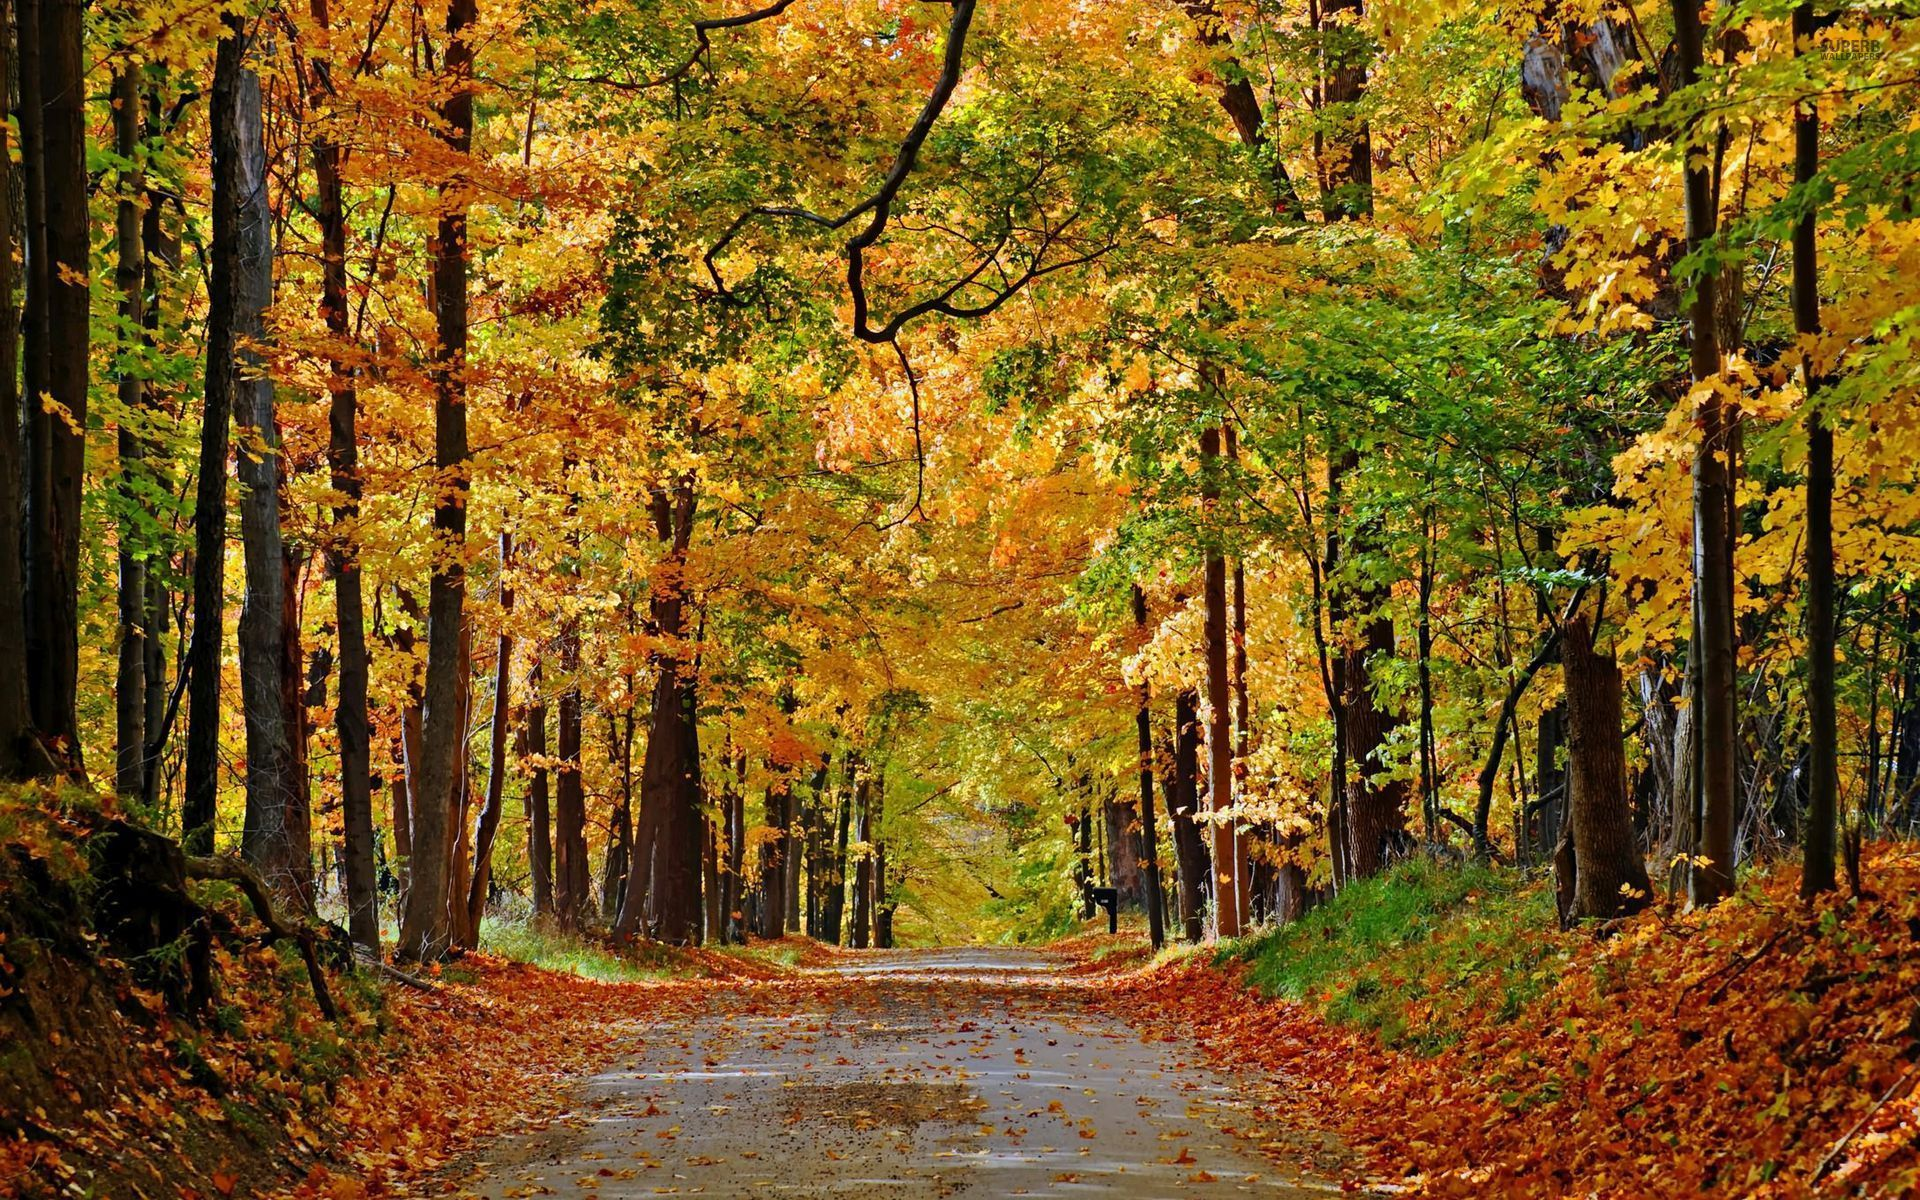 Falling Water Hd Wallpaper Nice Autumn Forest Path Leaves Wallpapers Nice Autumn